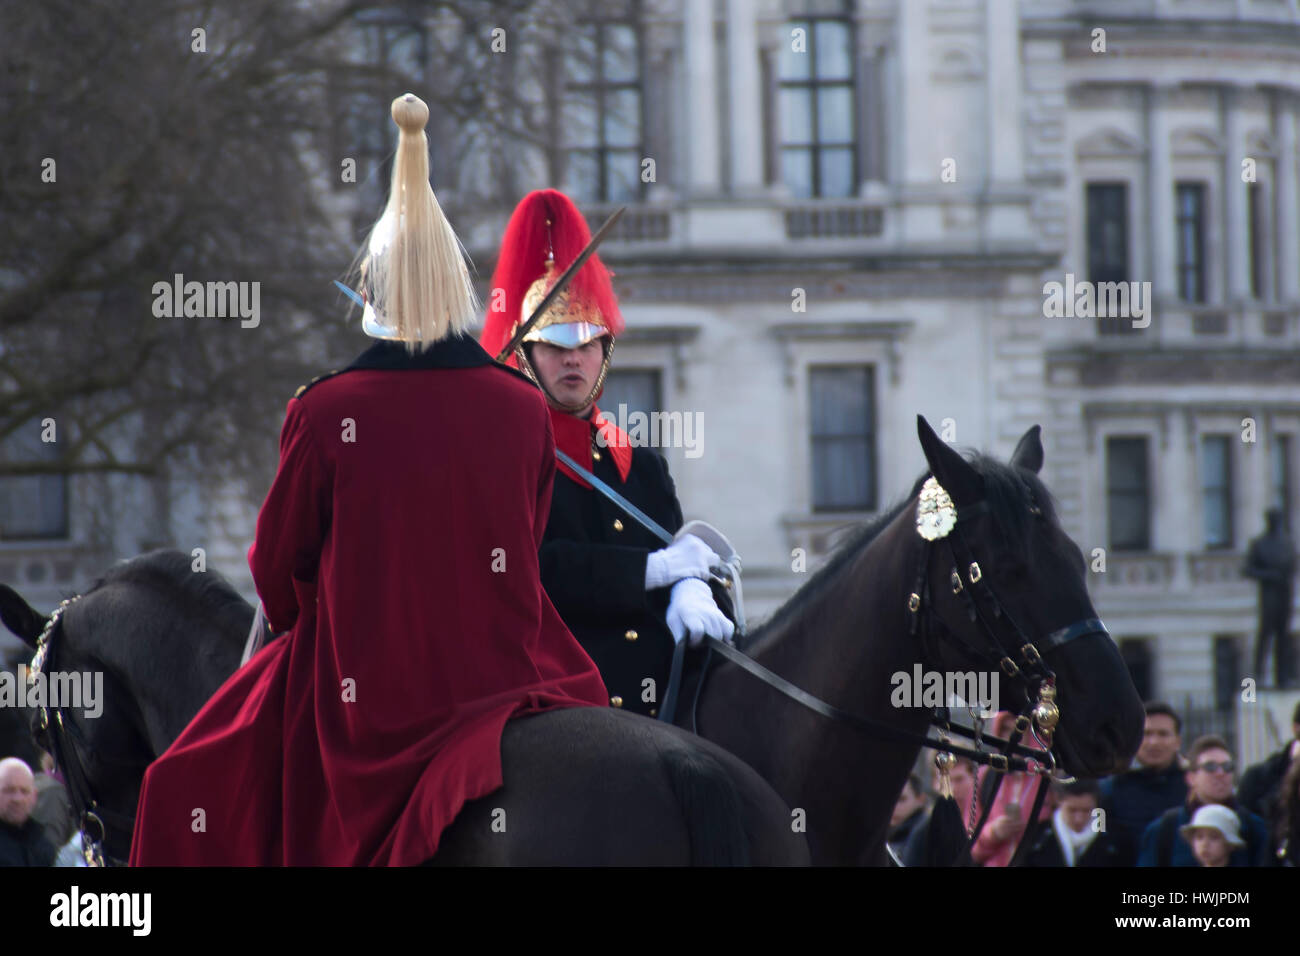 London, UK. 21st Mar, 2017. The queen's life guard is normally provided by men of the household cavalry mounted Stock Photo